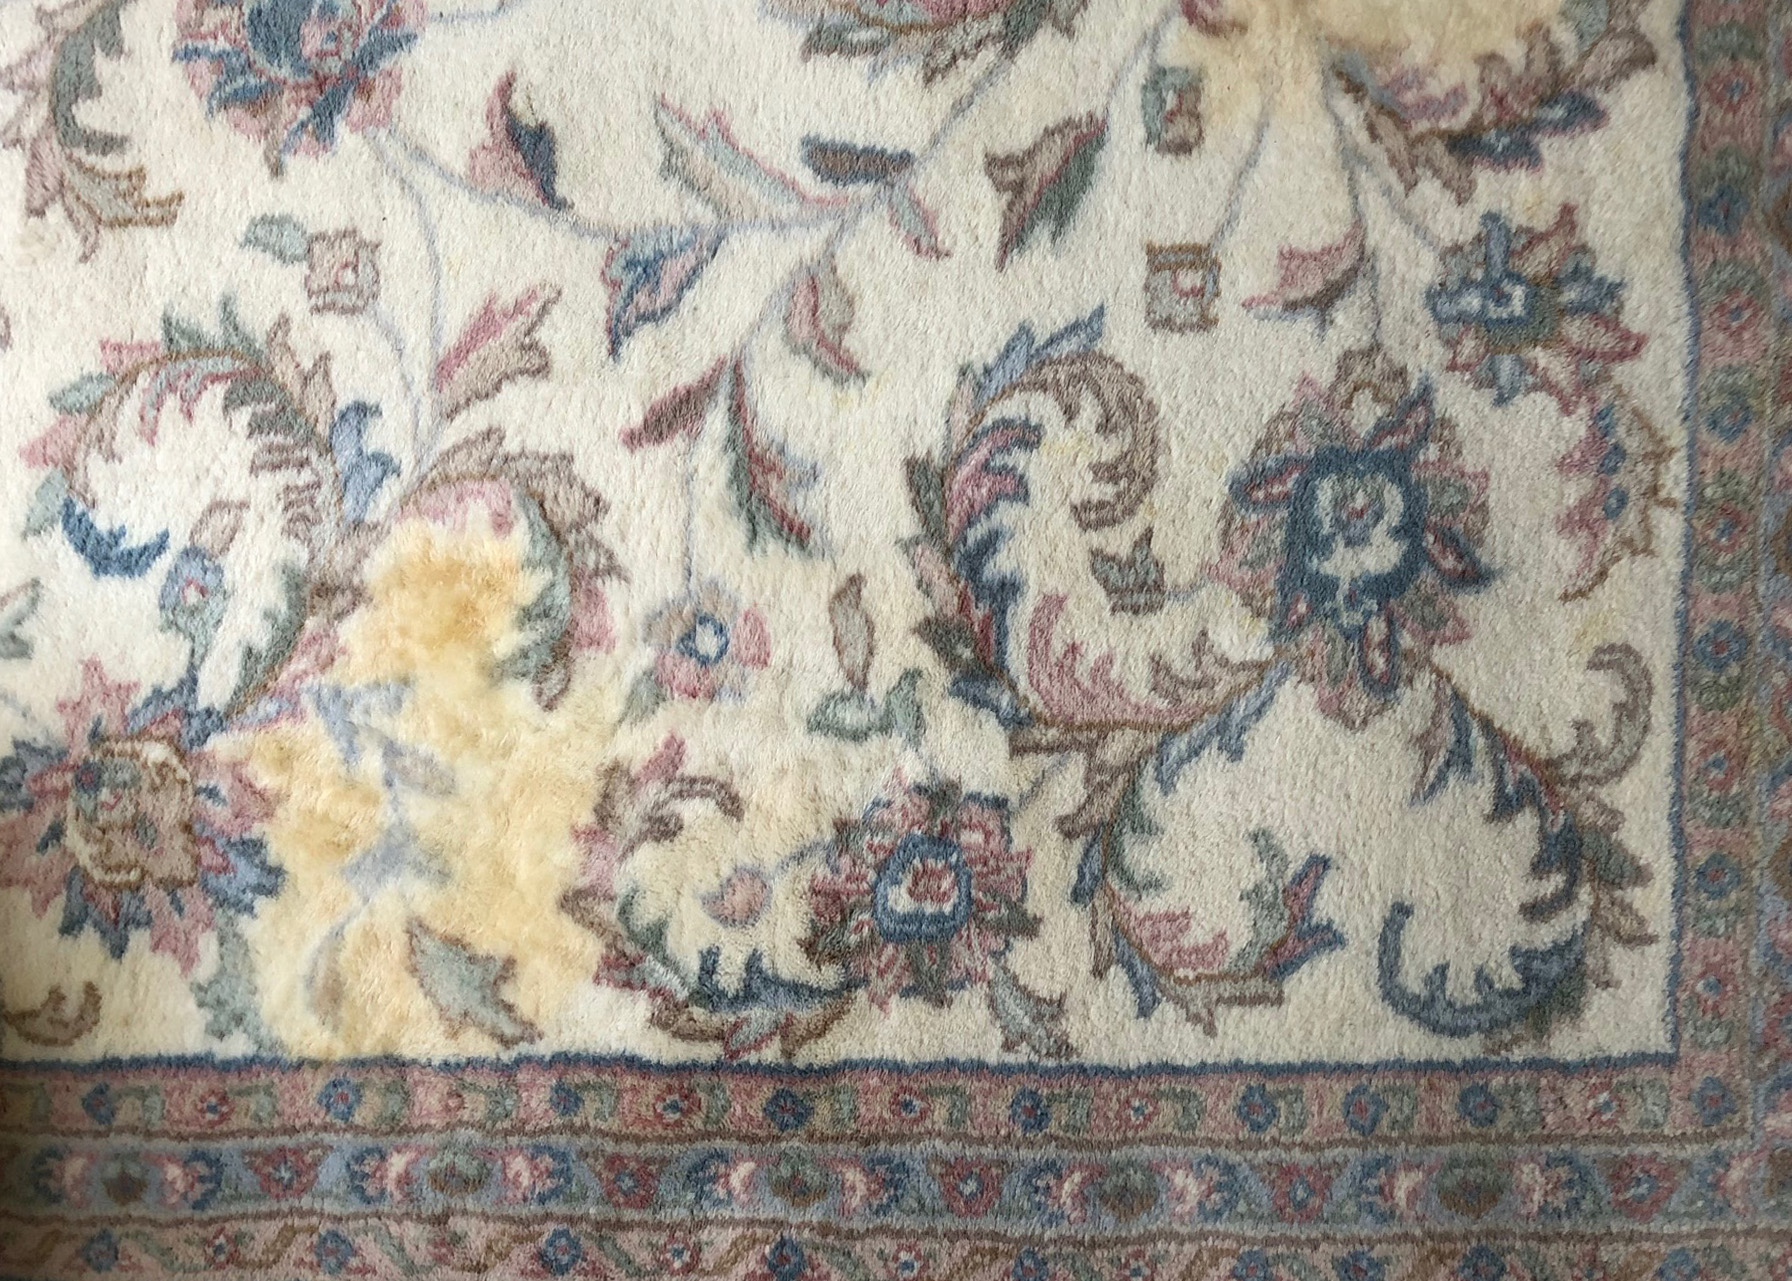 Before-Pet stain removal and color restoration on Persian rug.